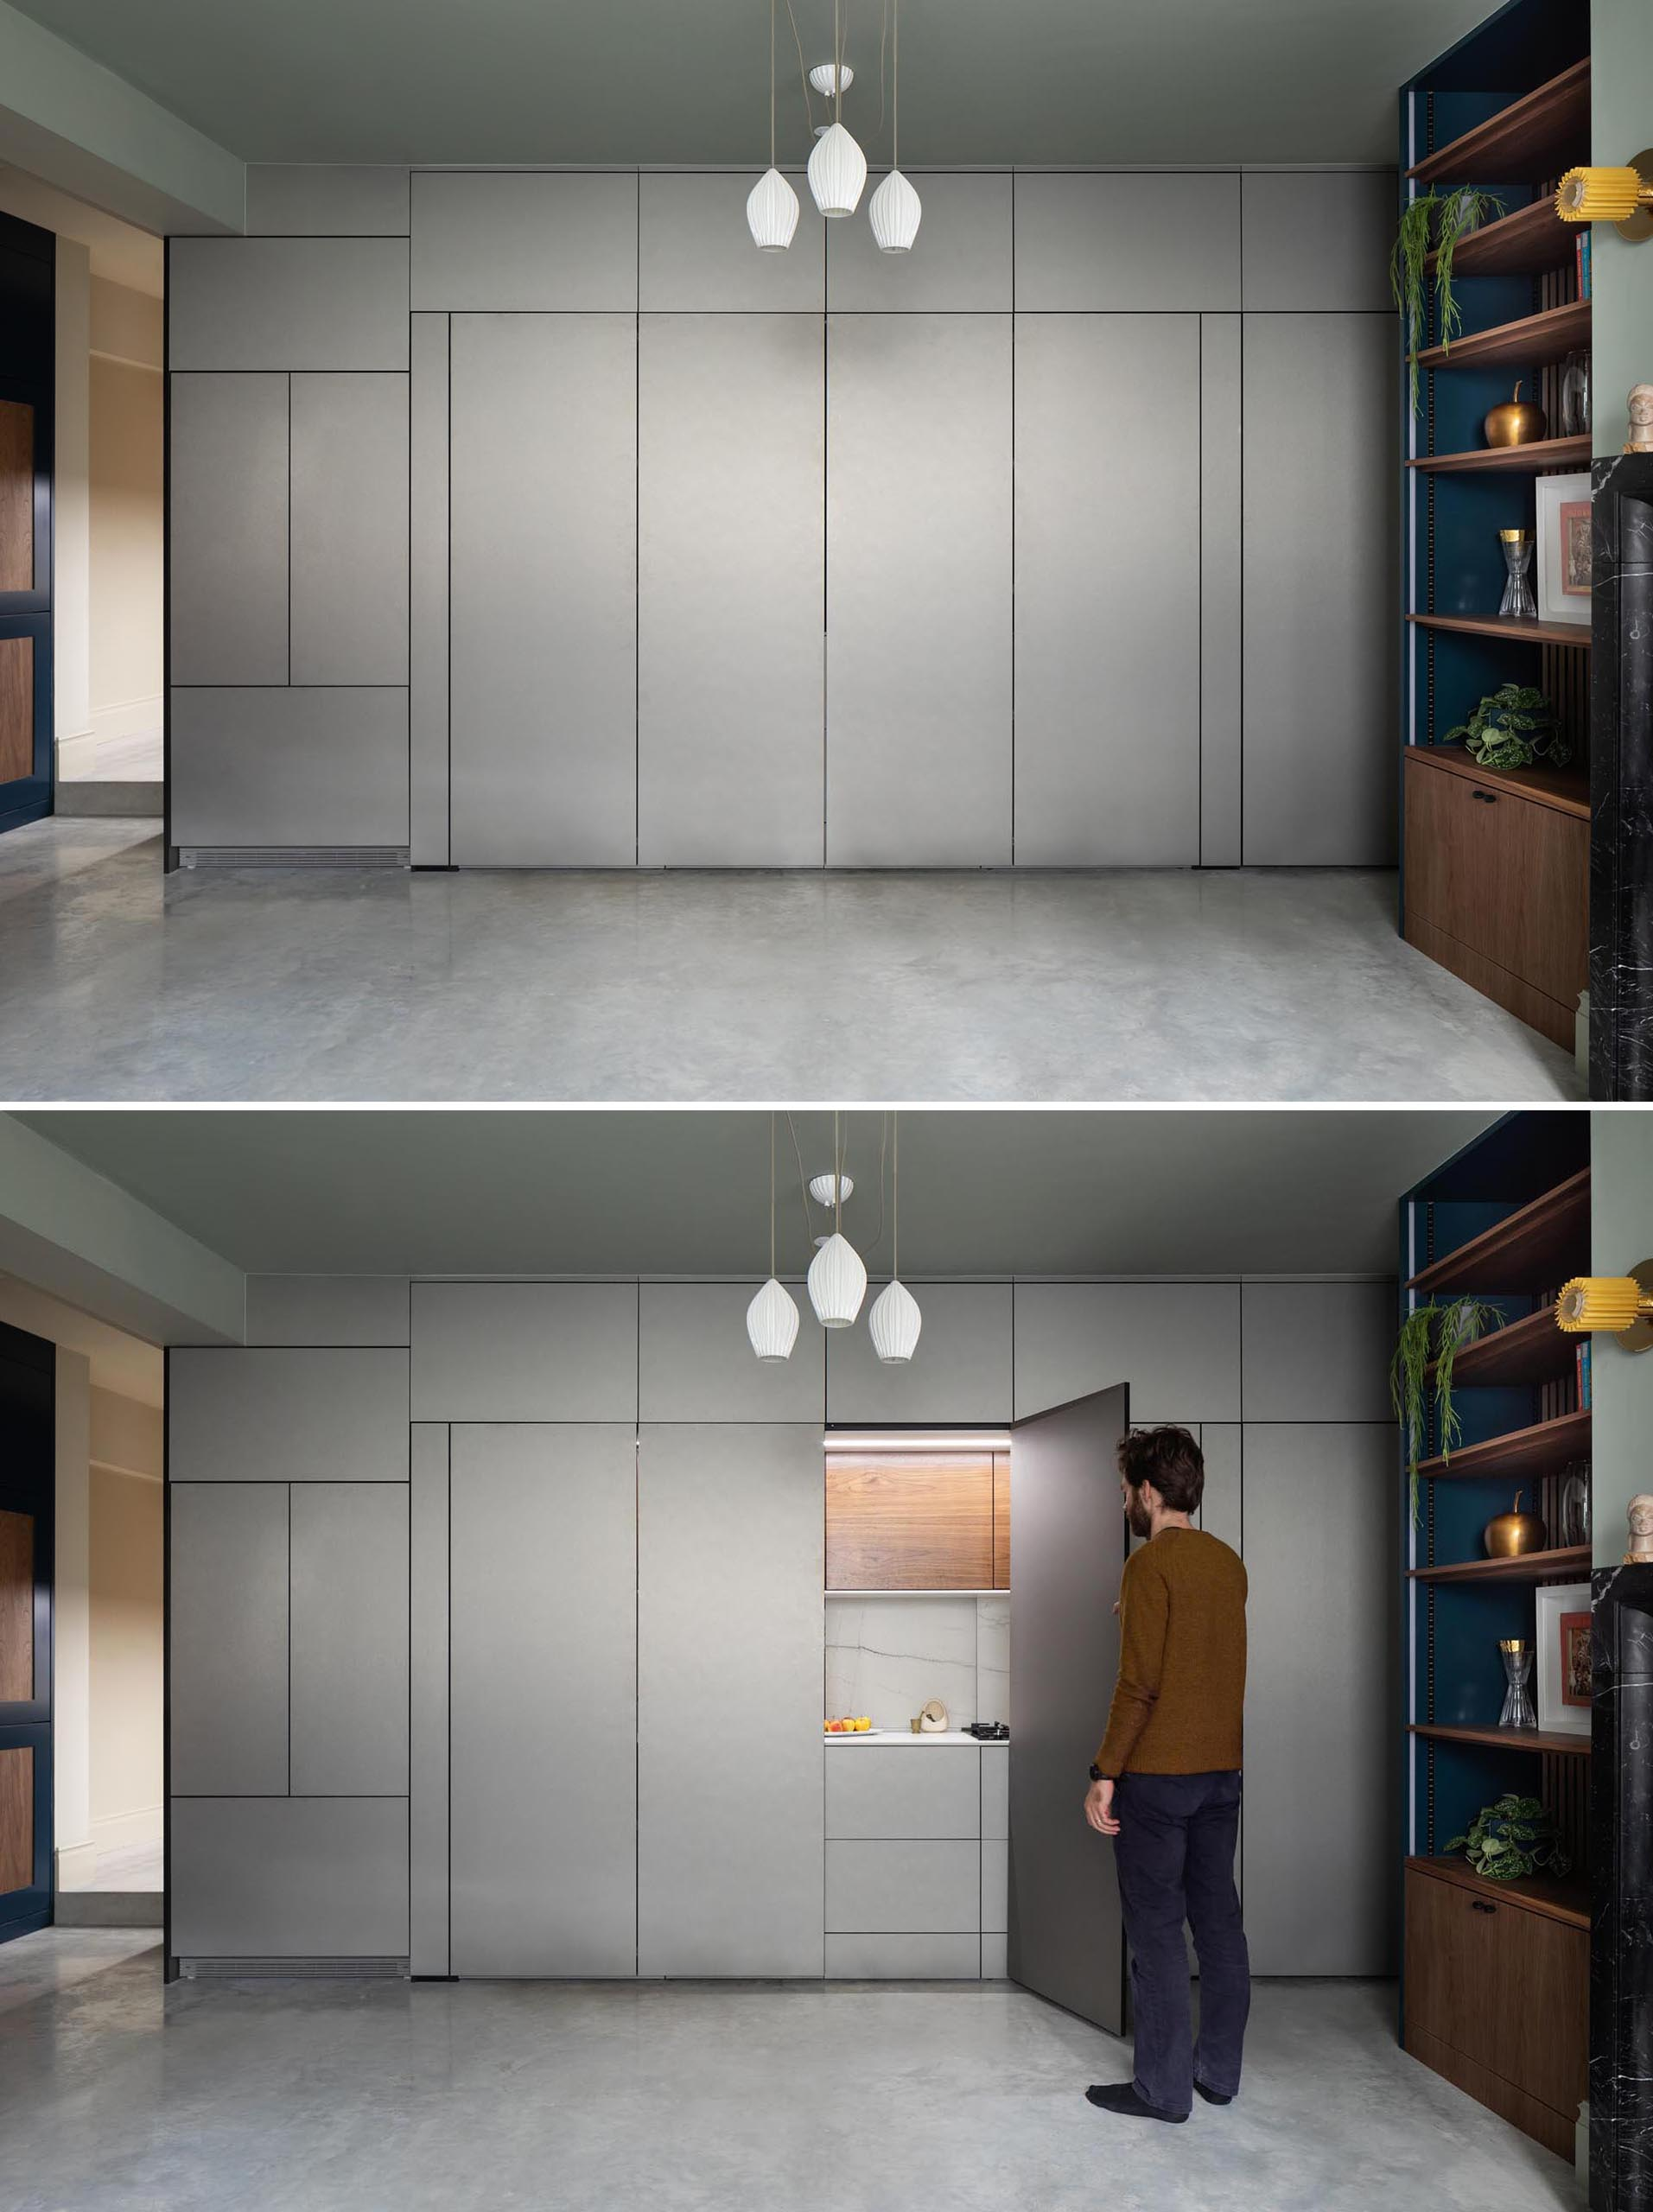 This modern kitchen, which can hidden away when not in use, is enclosed in muted metallic gray cabinets. The main section of the kitchen is accessed via a pair of folding doors.